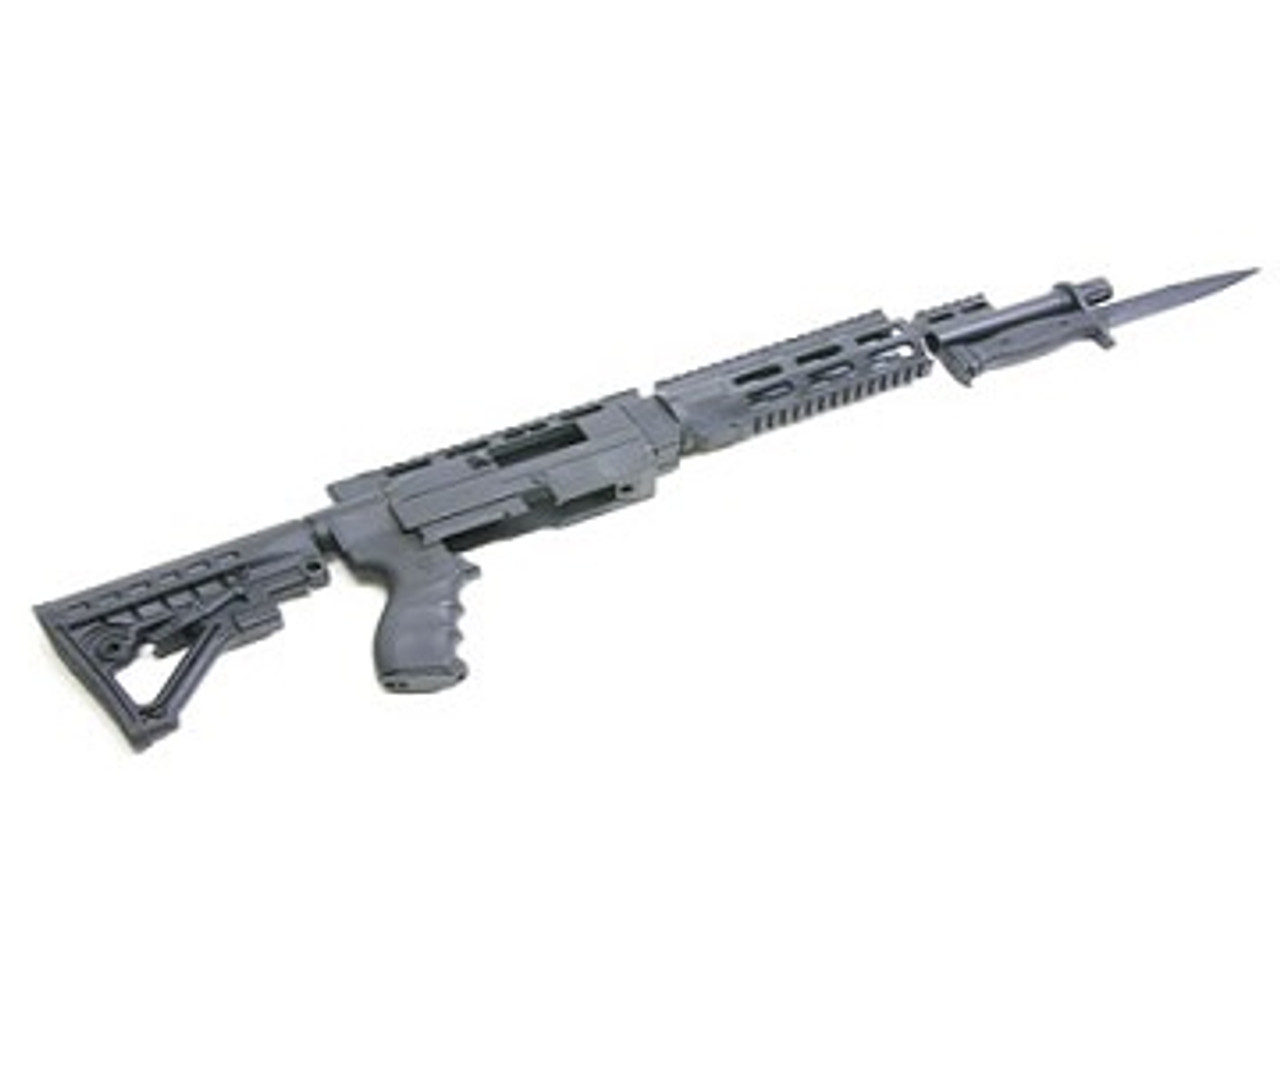 Archangel® 556 AR-15® Style Conversion Stock for the Ruger® 10/22® - Black Polymer